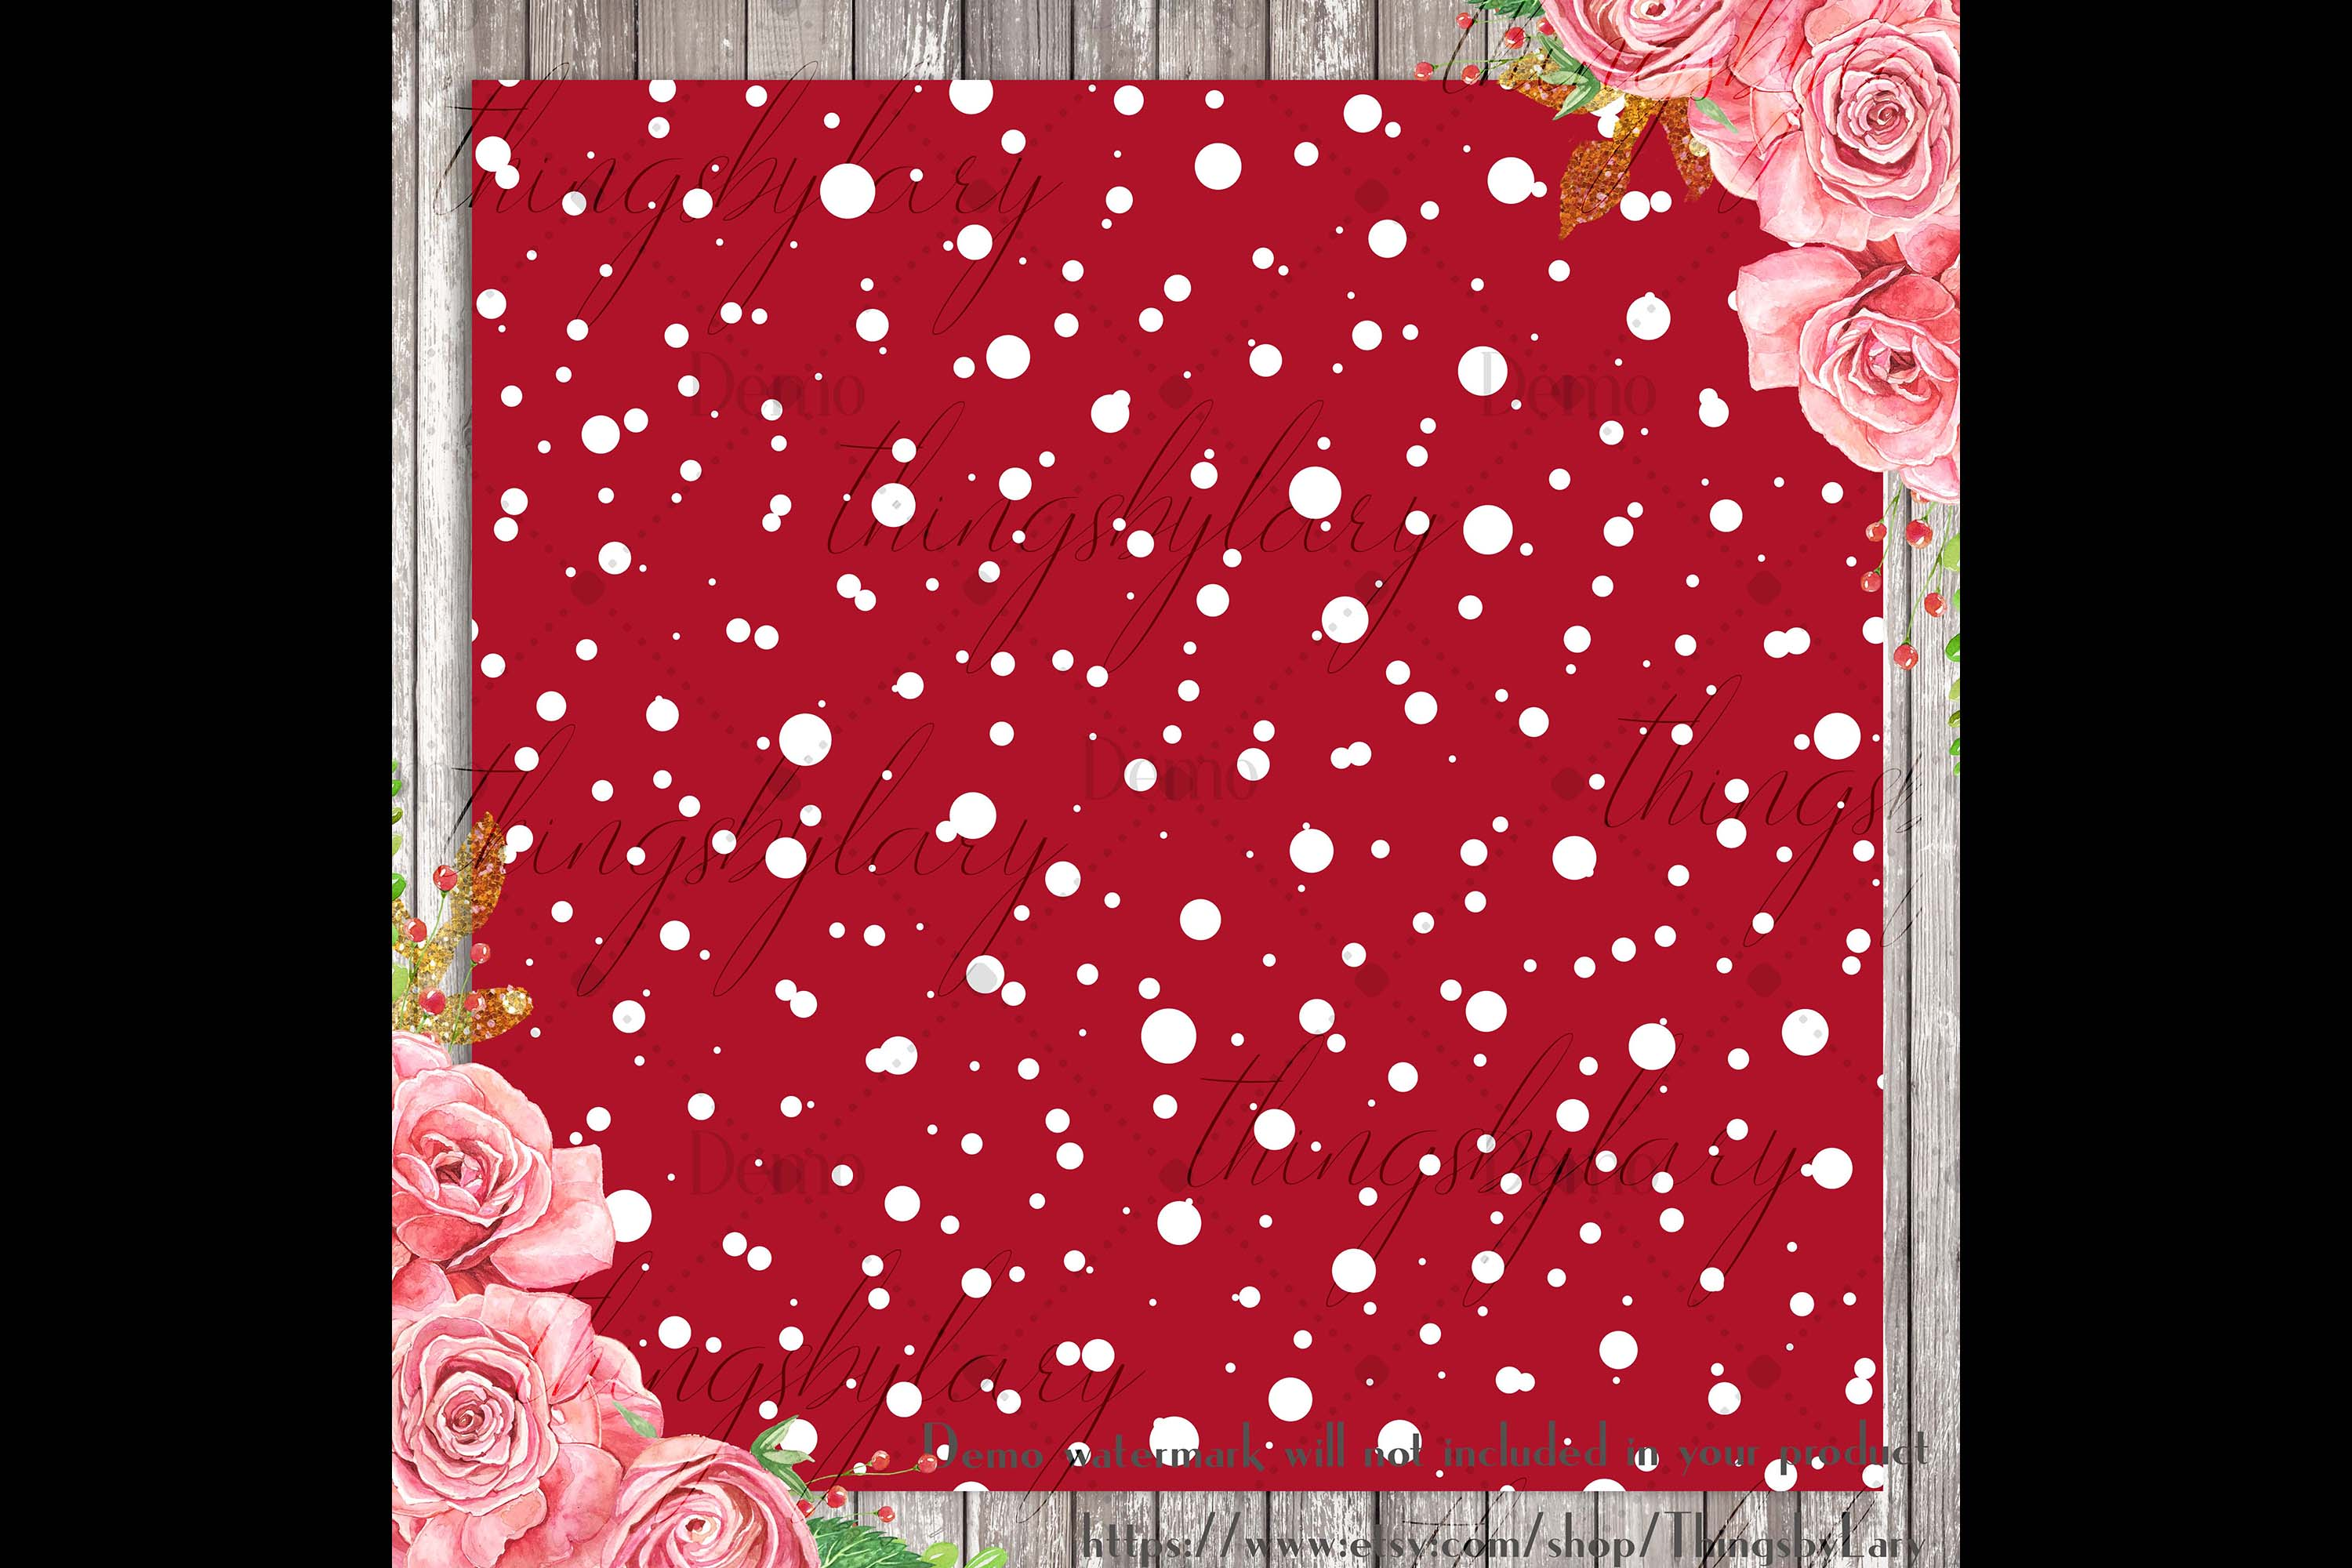 100 Seamless Falling Christmas White Snow Digital Papers example image 2